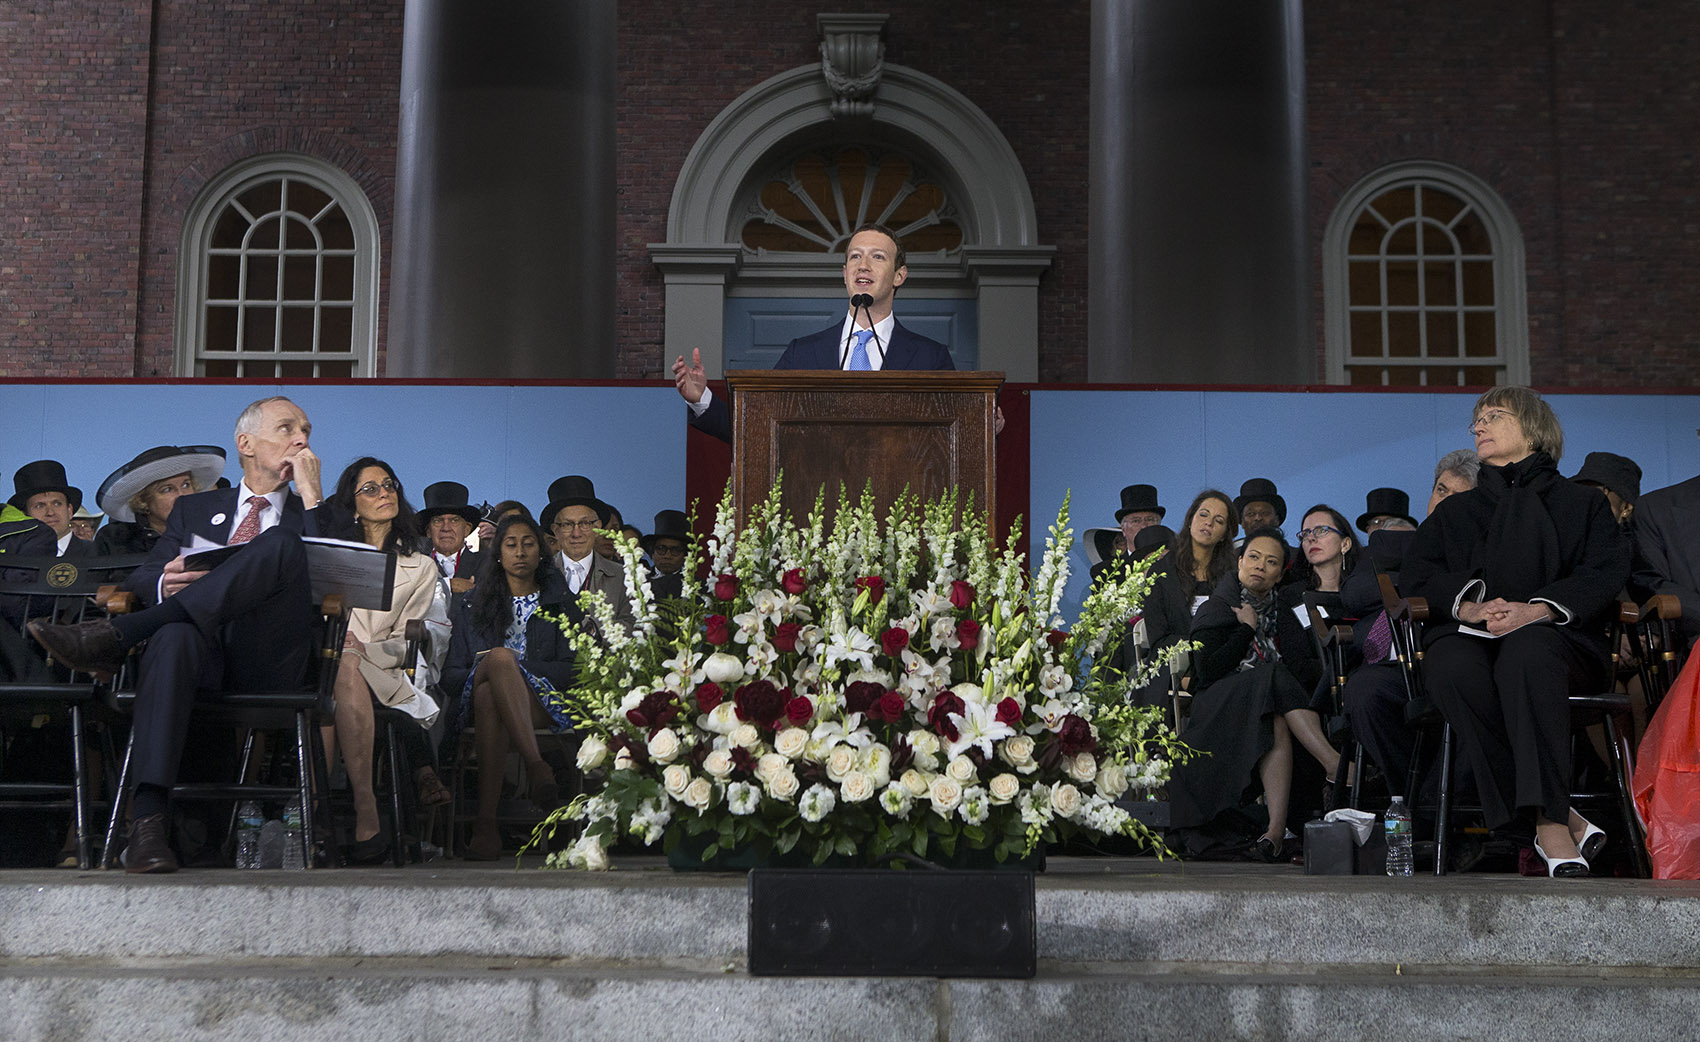 Facebook CEO Mark Zuckerberg gave Harvard's commencement address Thursday afternoon. Zuckerberg created the social media site in his Harvard dorm room in 2004. He dropped out in 2005 to further the company. (Jesse Costa/WBUR)